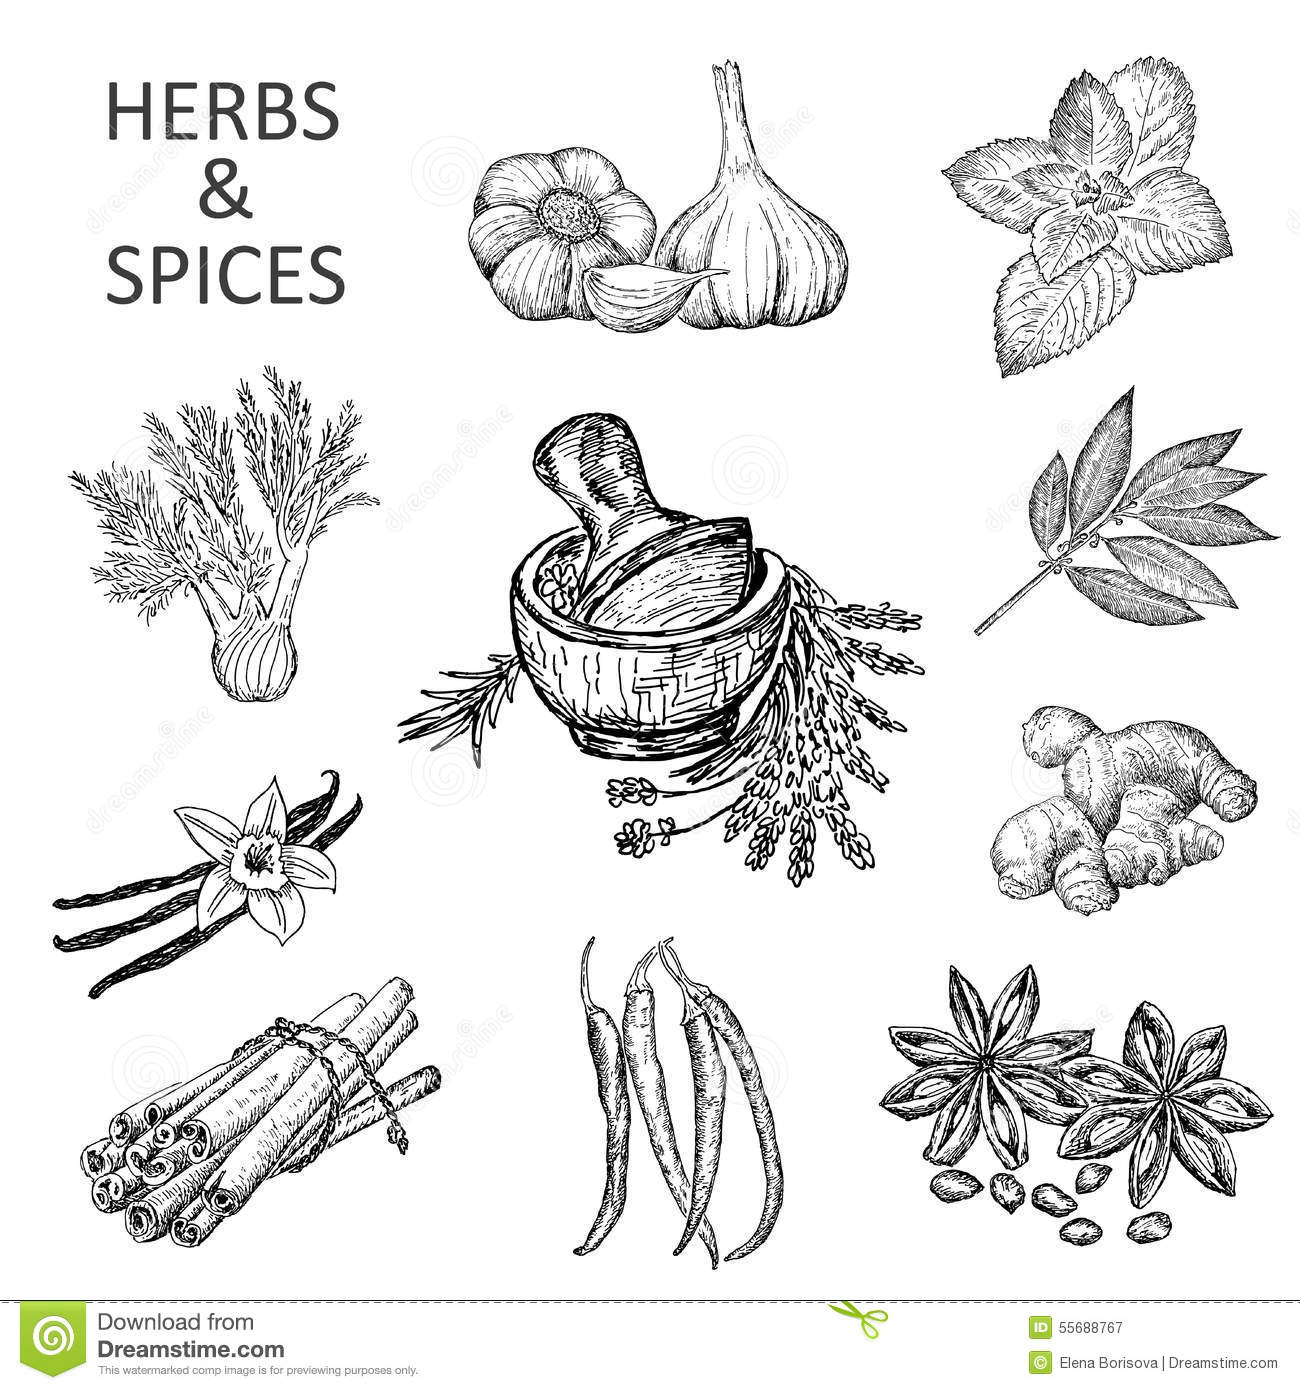 herbs coloring pages - photo#31